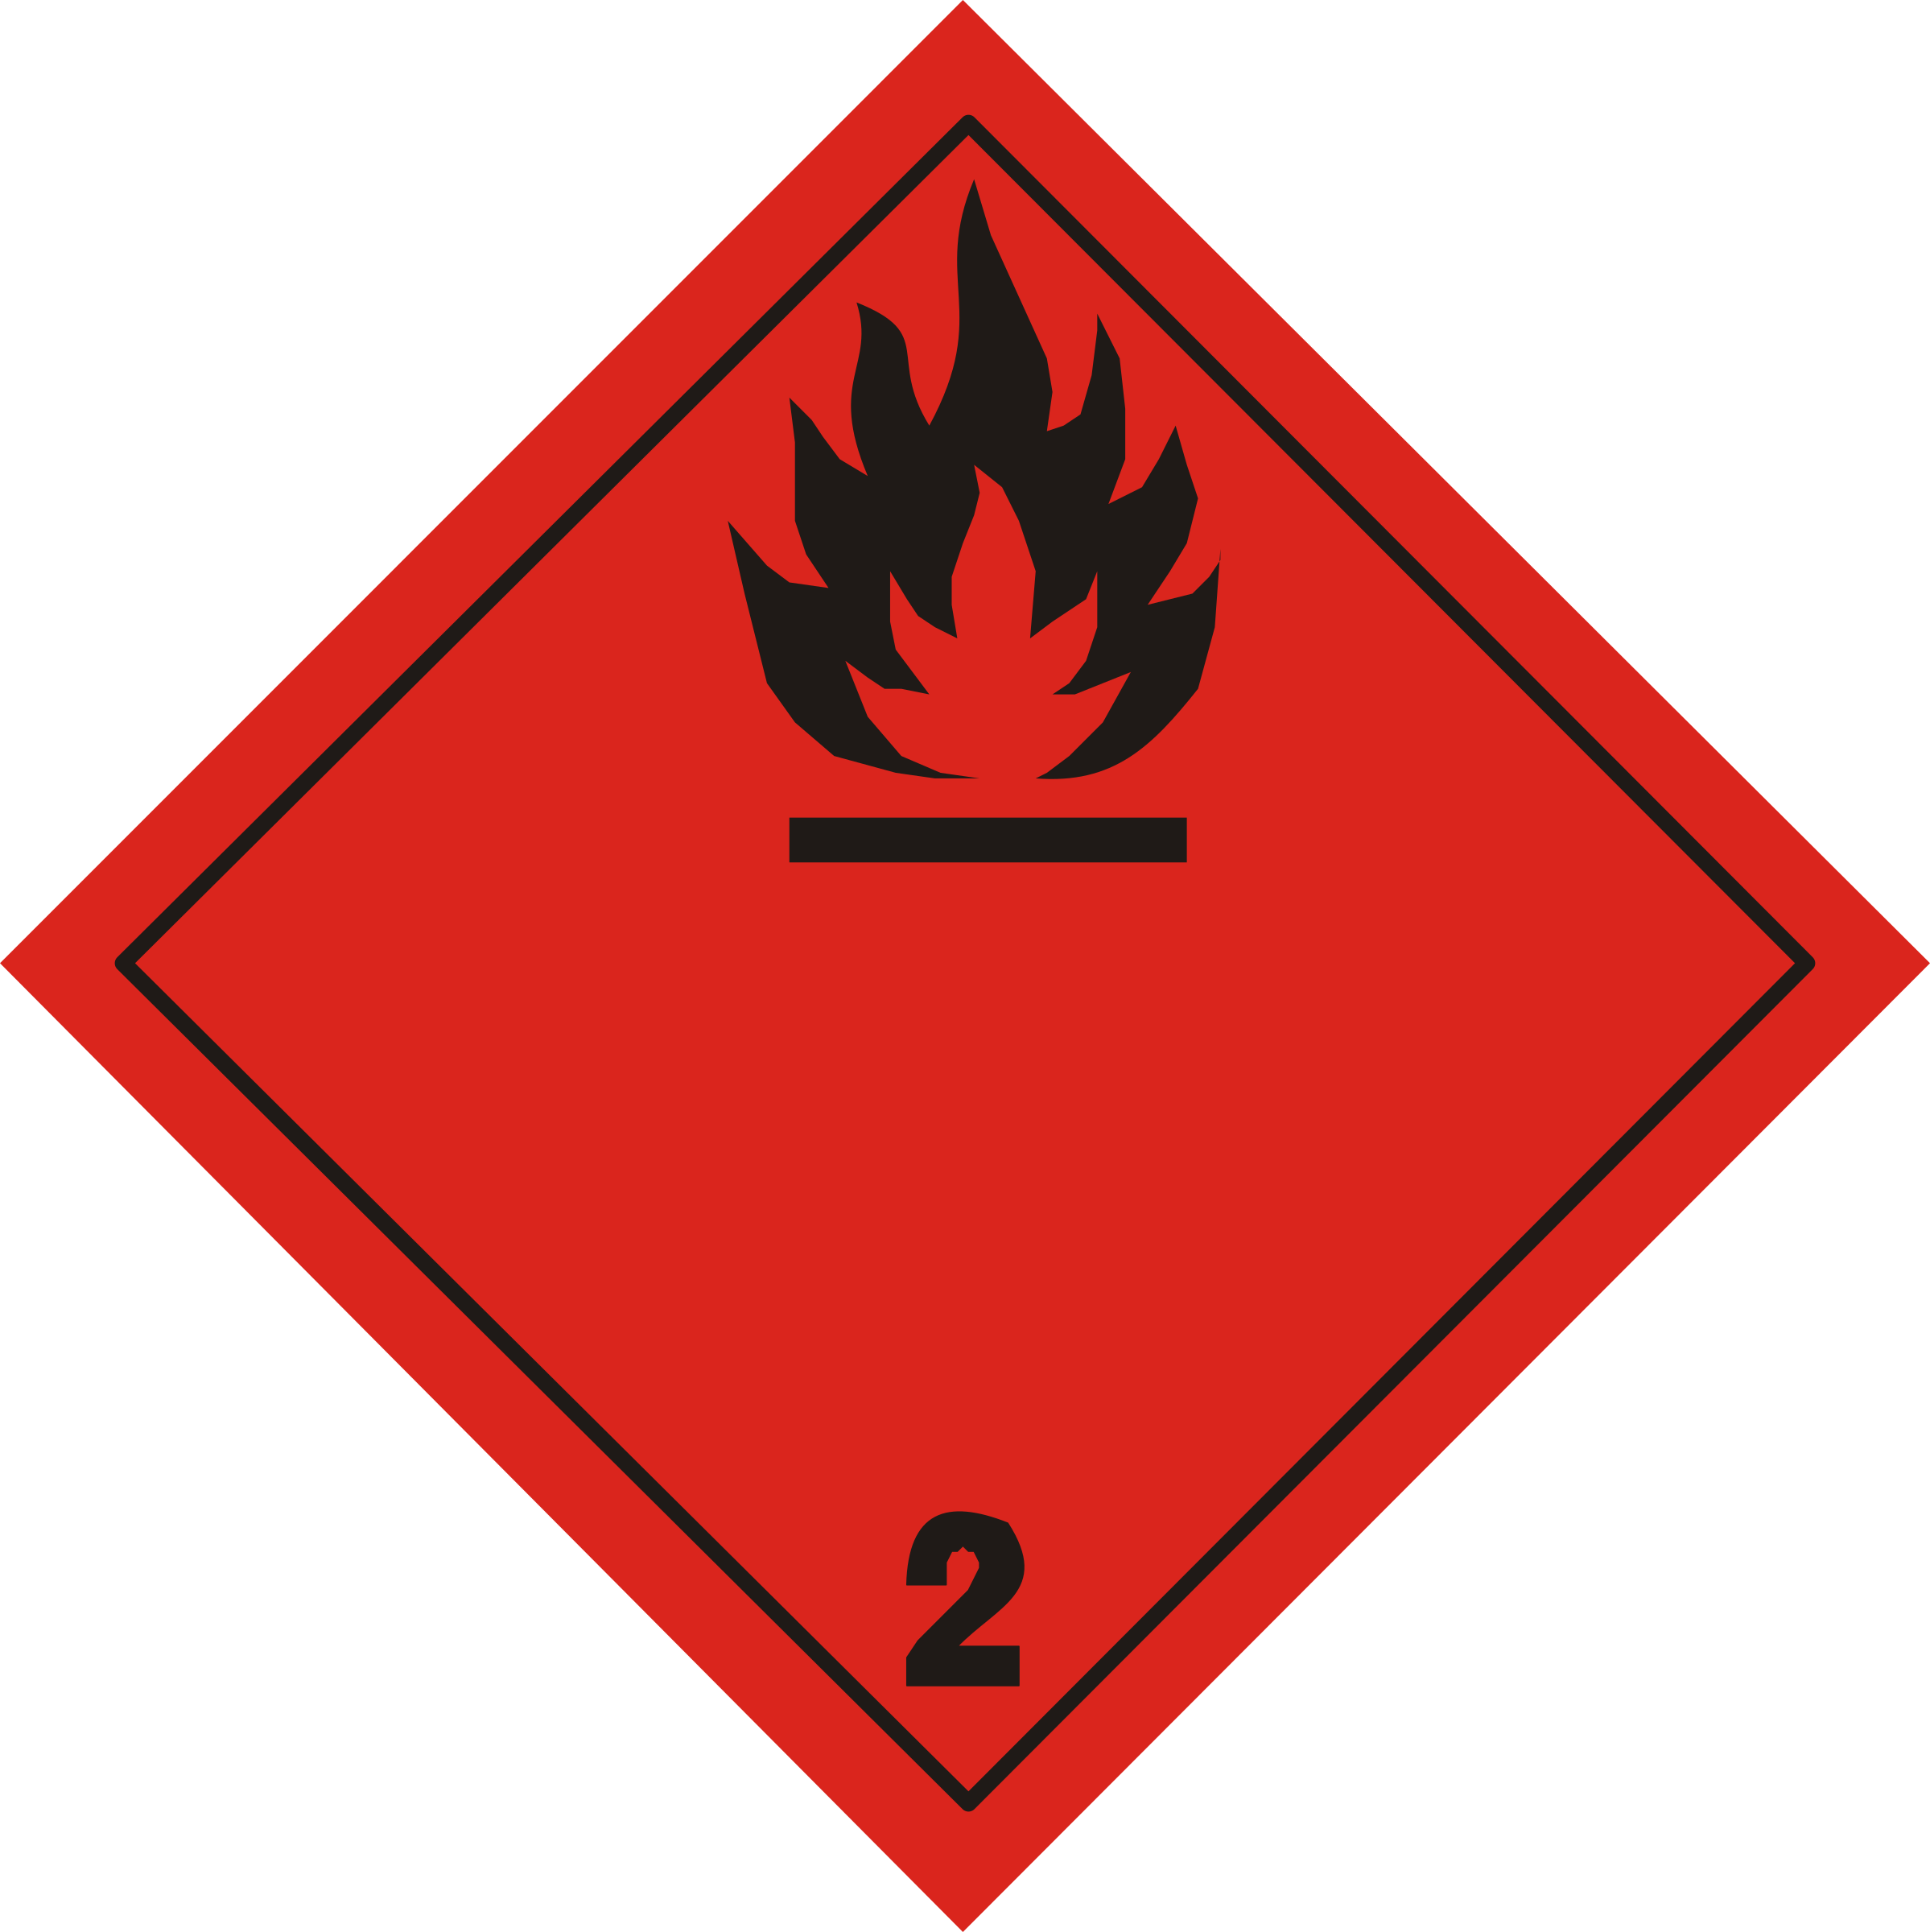 ADR pictogram 2.1-Flammable gases by Juhele